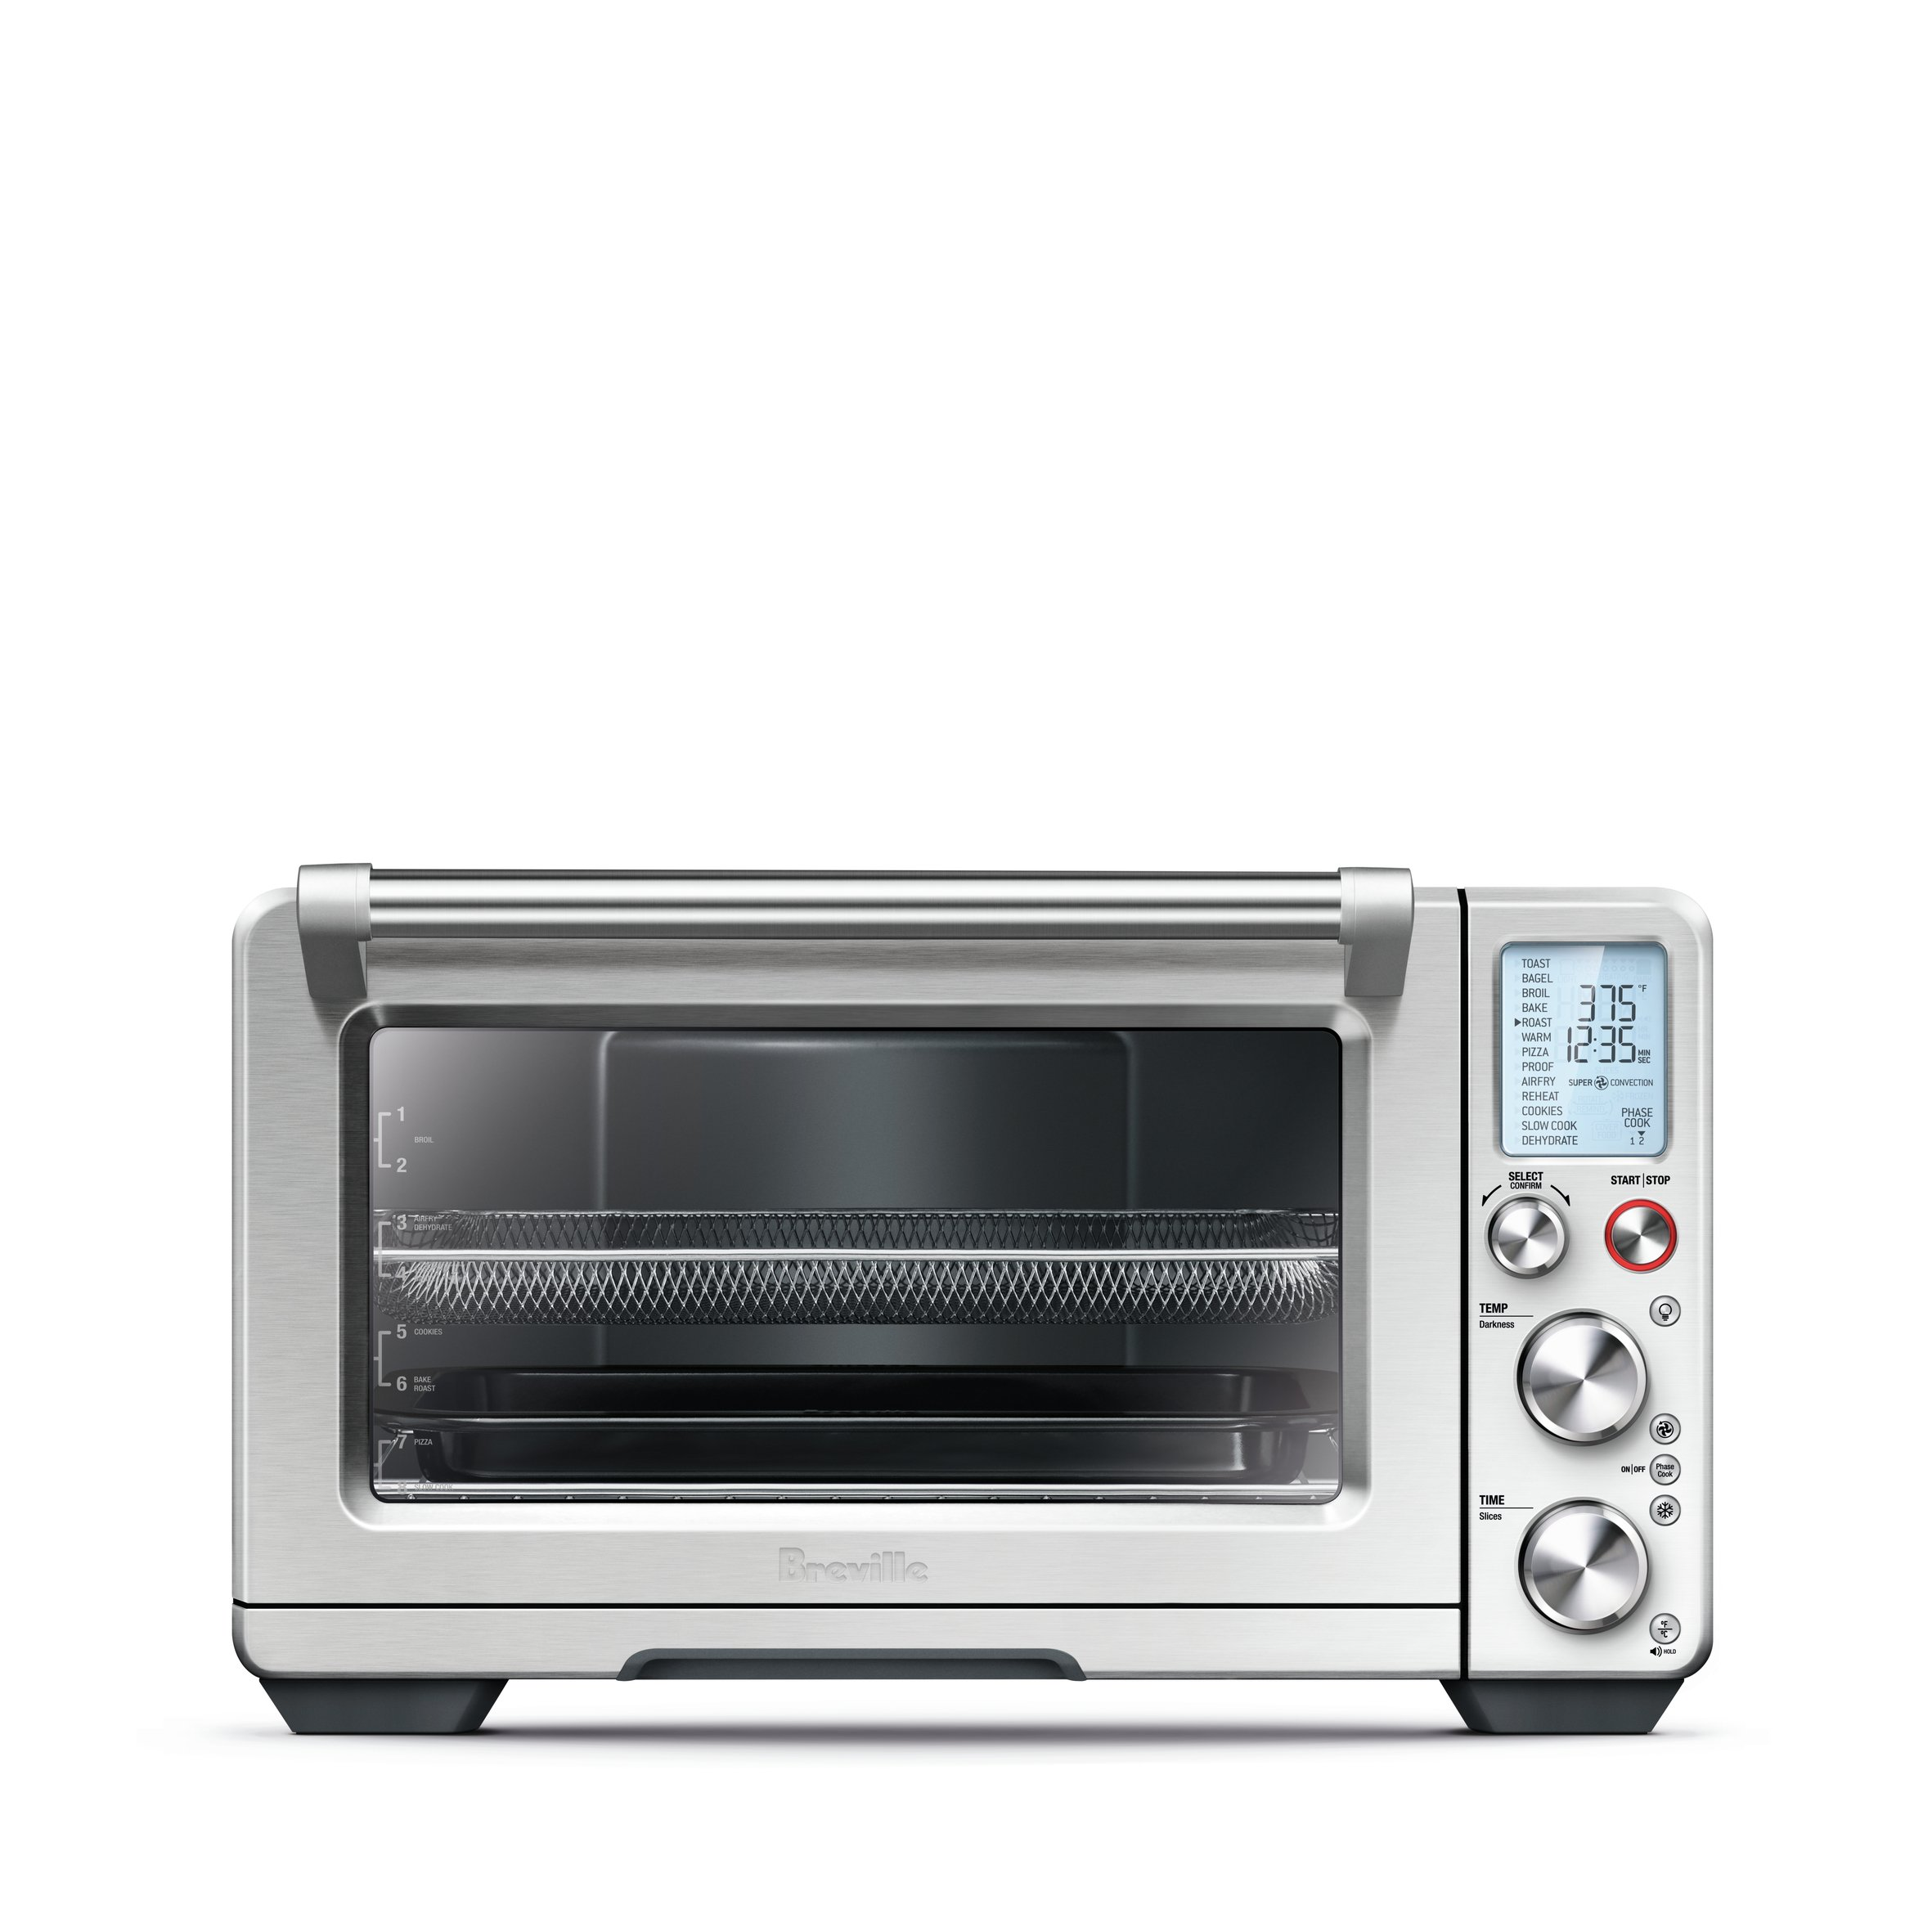 breville convection toaster oster youtube watch oven review